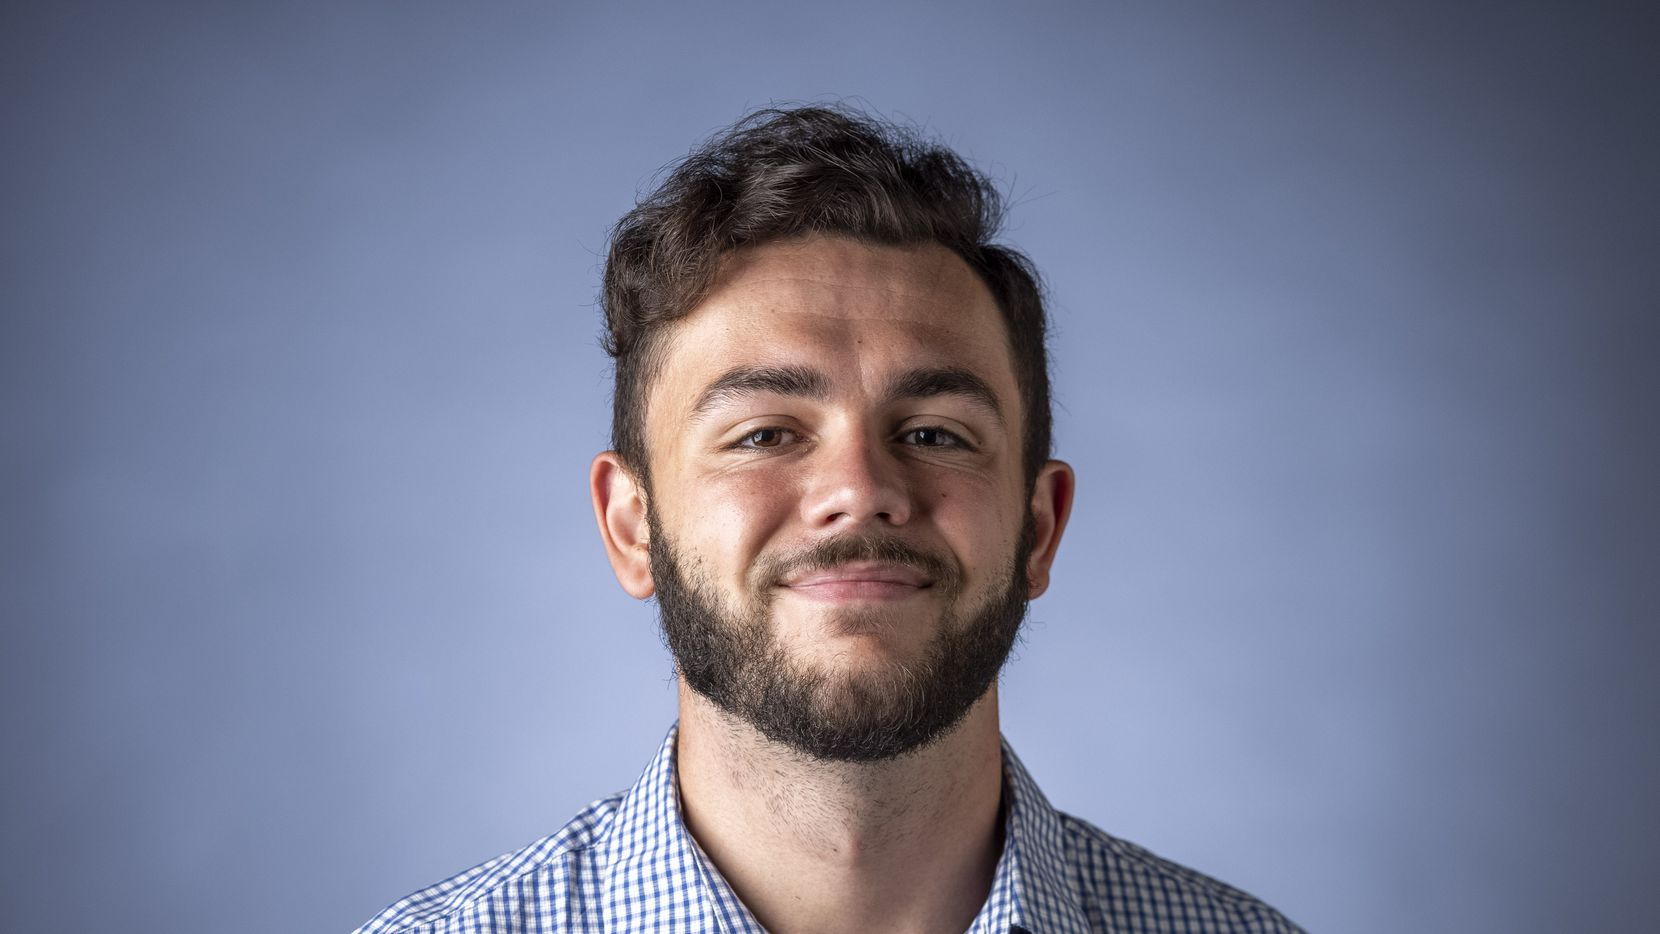 High school sports reporter Shawn McFarland poses for a portrait at The Dallas Morning News studio on Monday, Oct. 4, 2021, in Dallas.